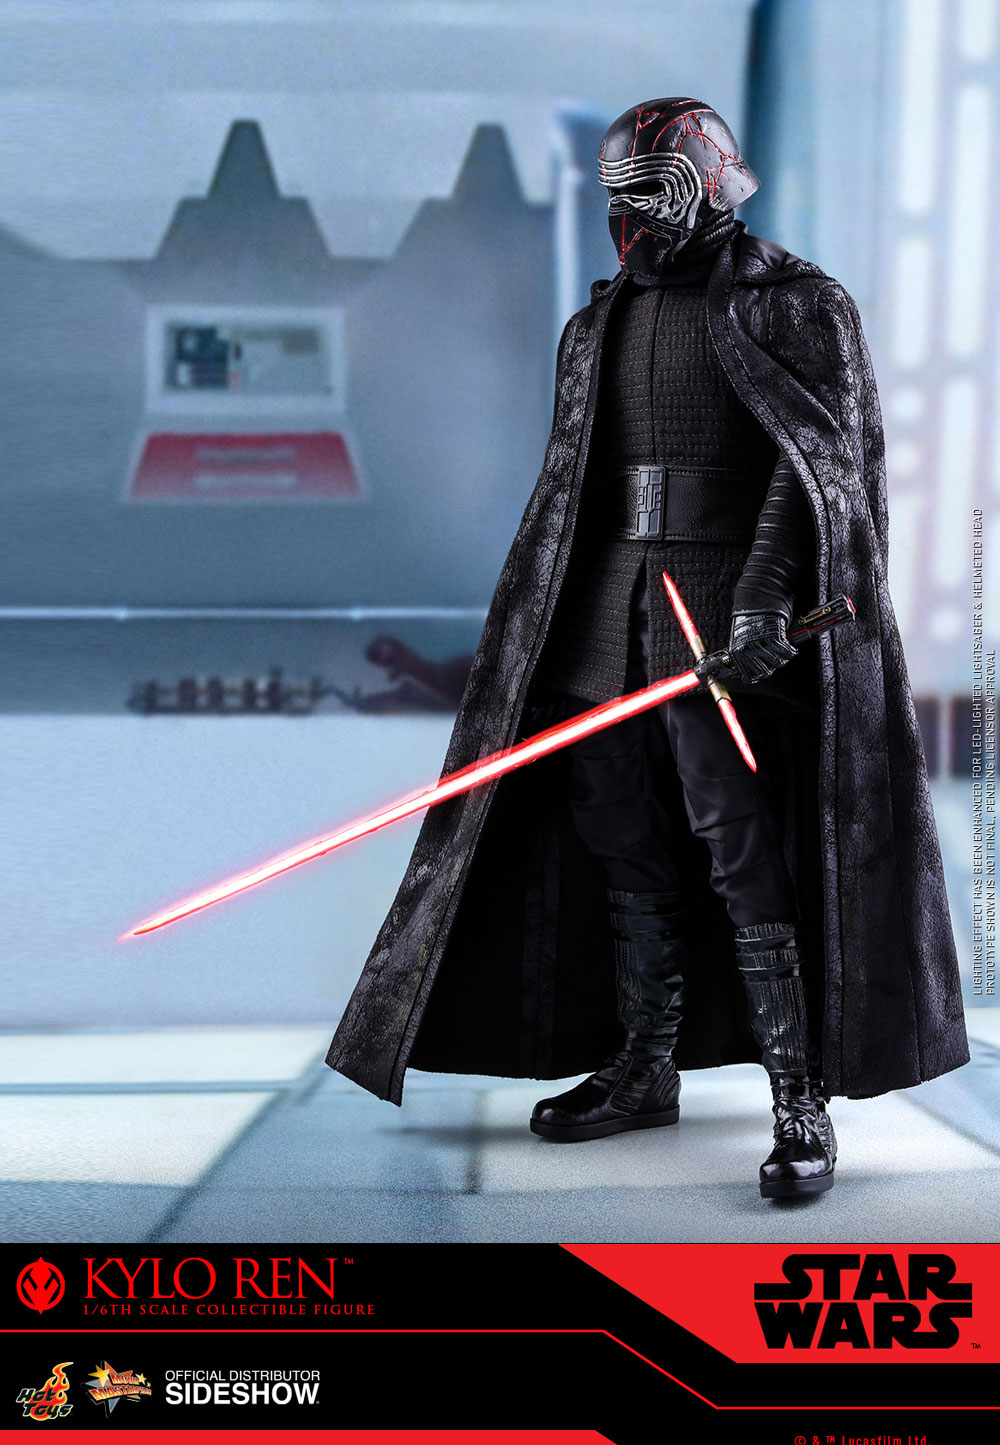 [Pre-Order] Episode IX The Rise of Skywalker - Kylo Ren Movie Masterpiece